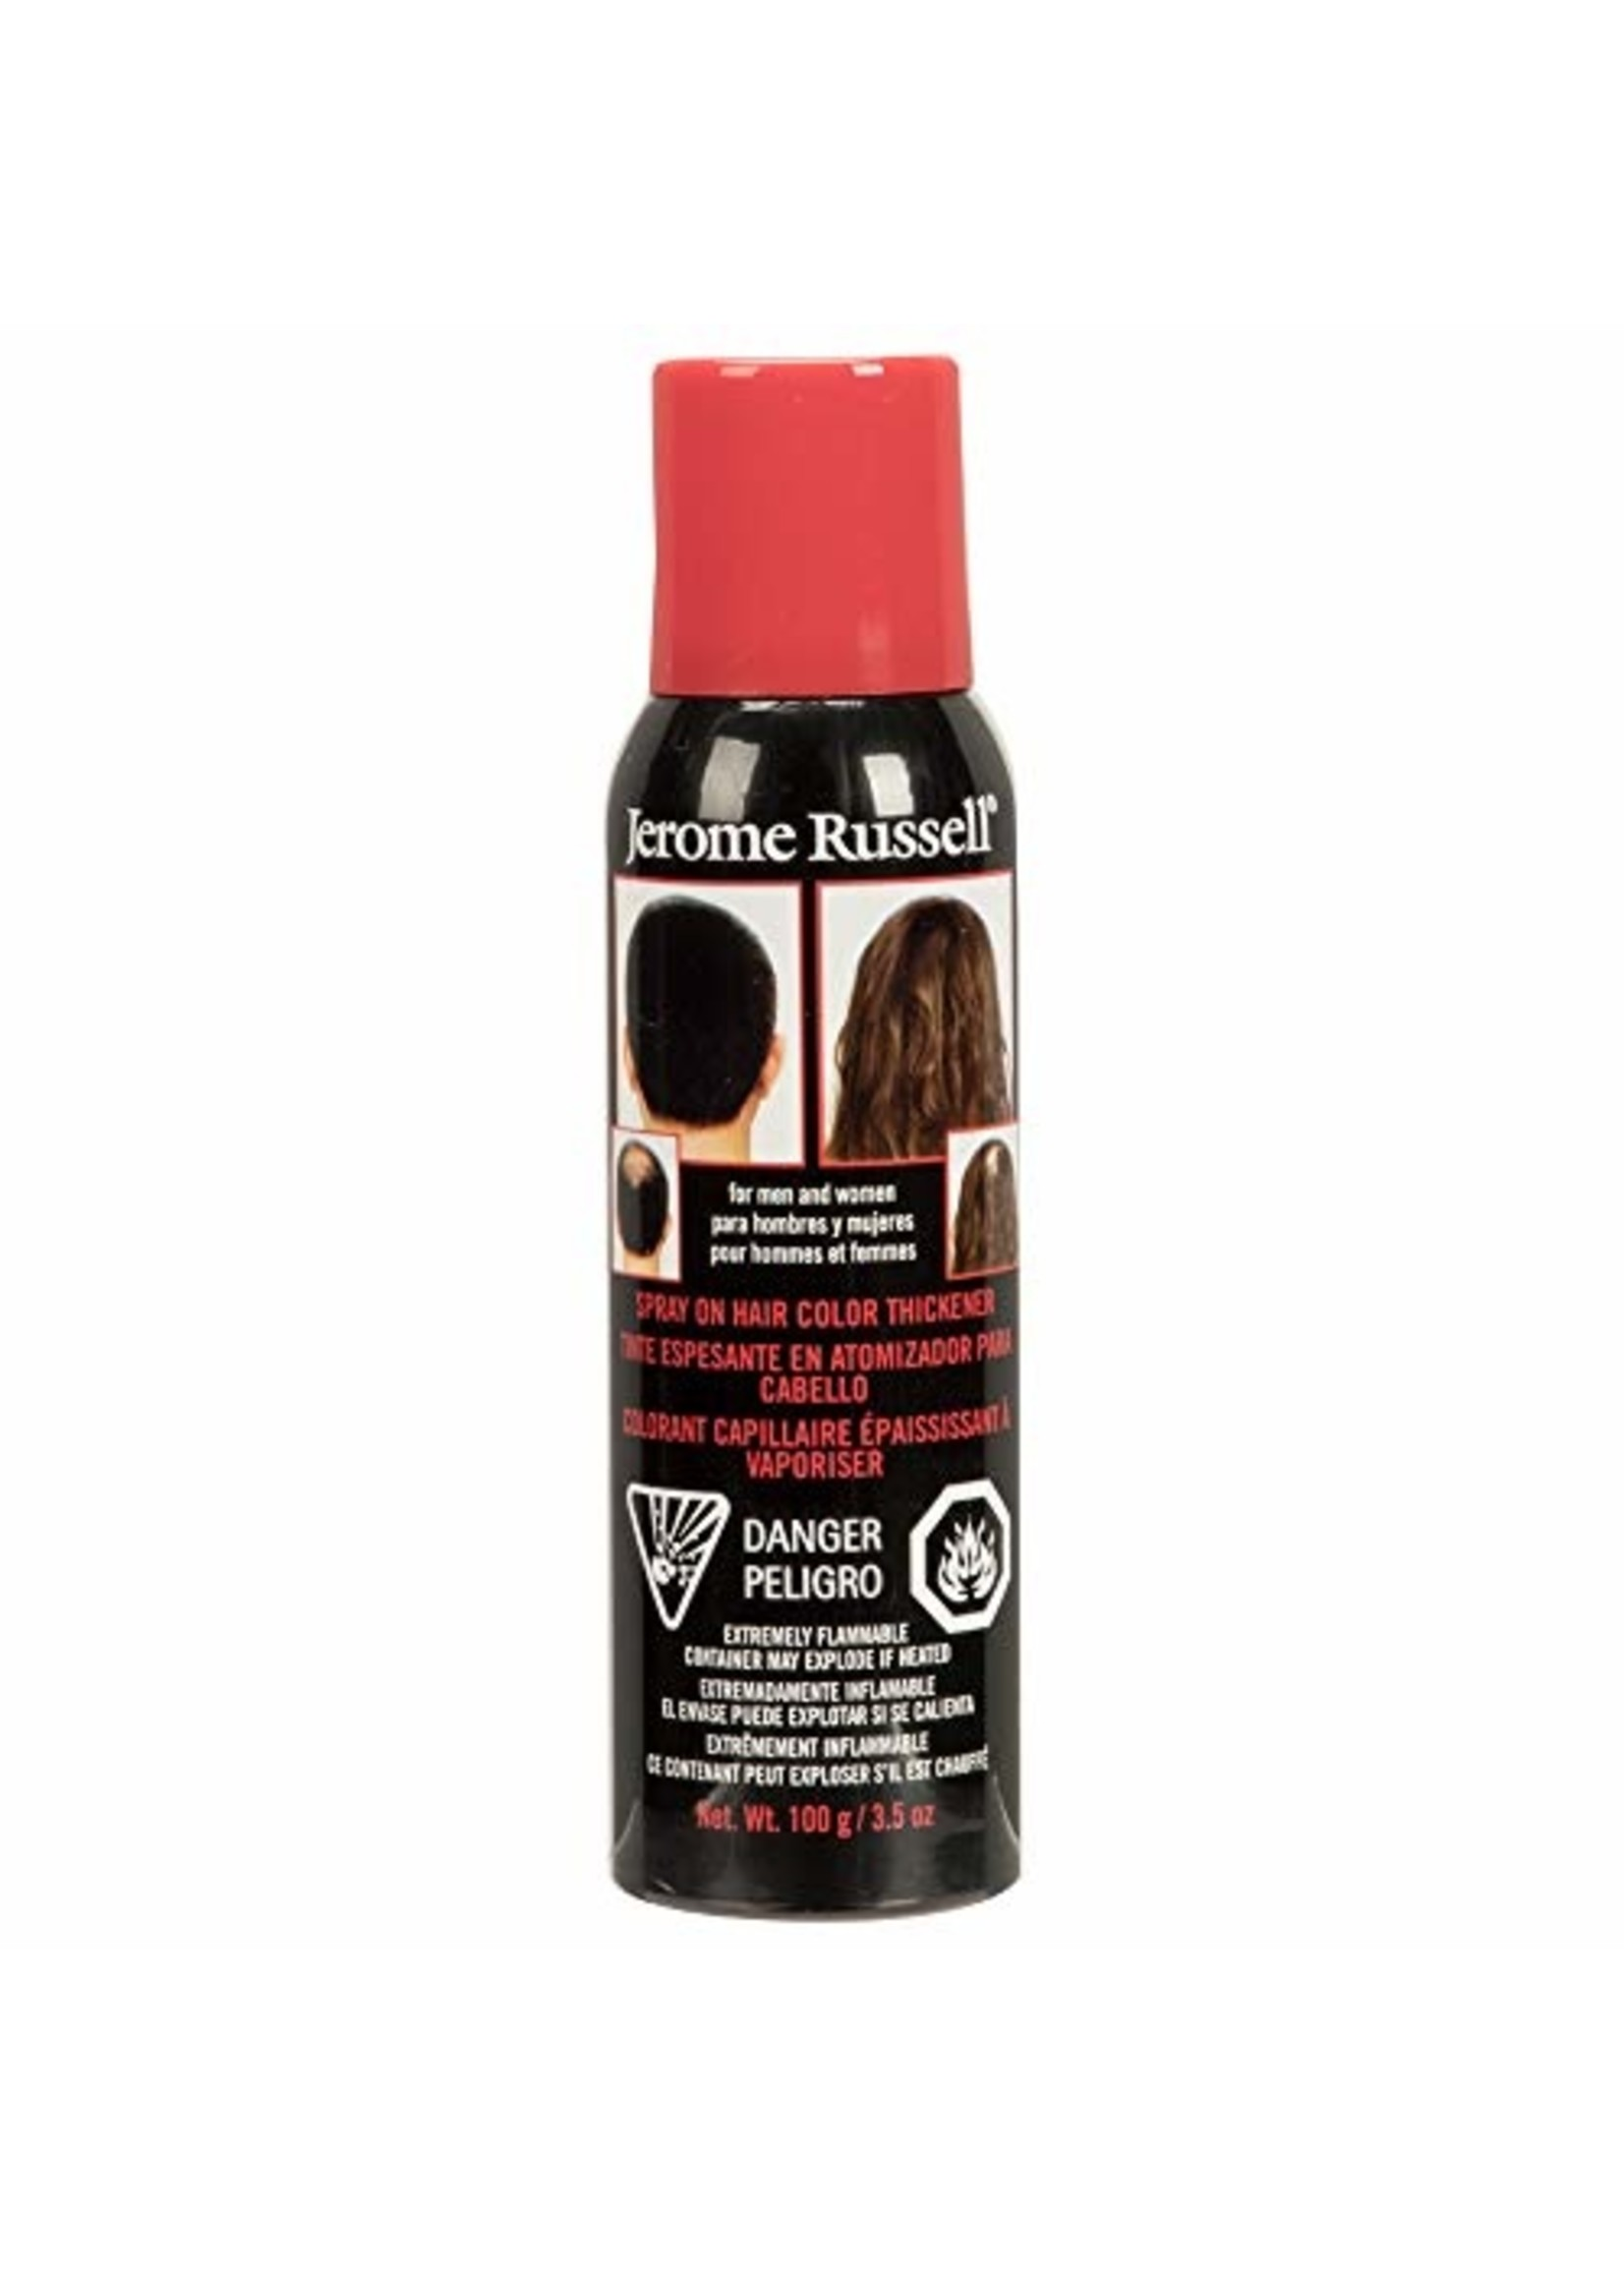 Jerome Russell Hair Color Thickener